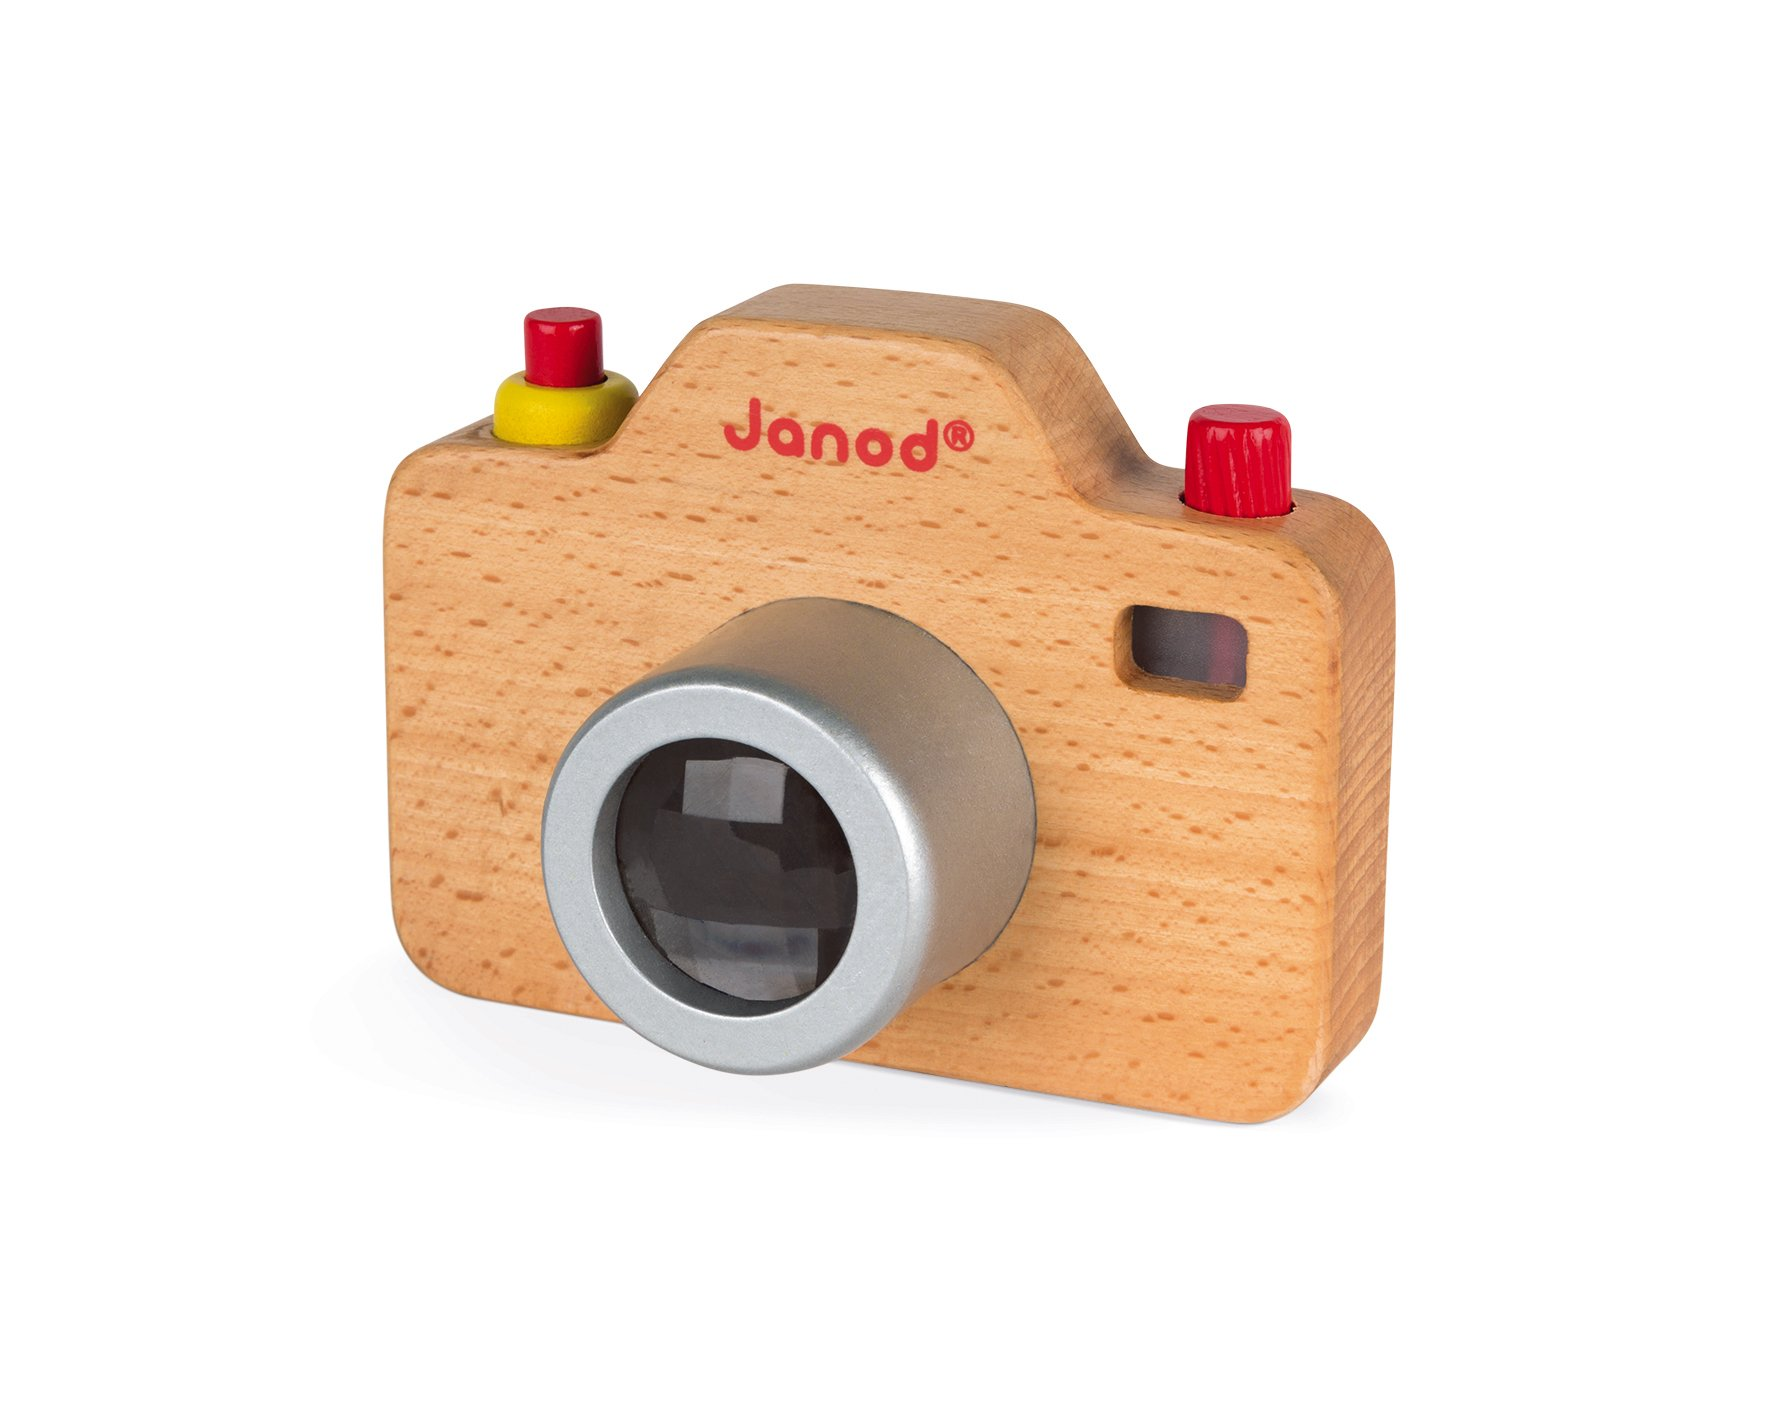 Janod Wooden Interactive Sound Camera Toy by Janod (Image #10)